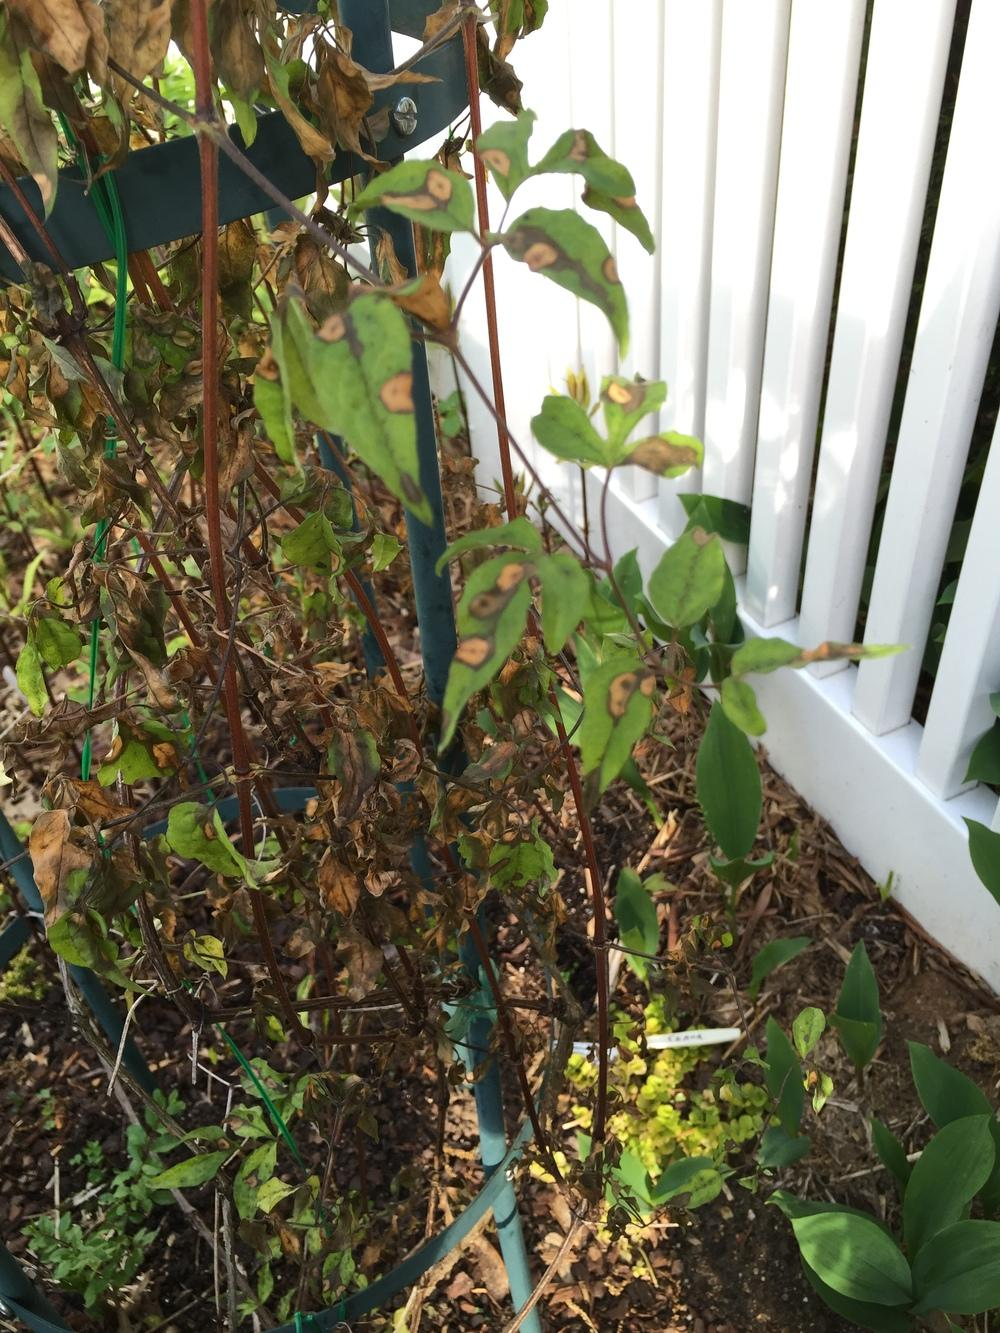 Clematis forum: Can this clematis be saved? - Garden.org